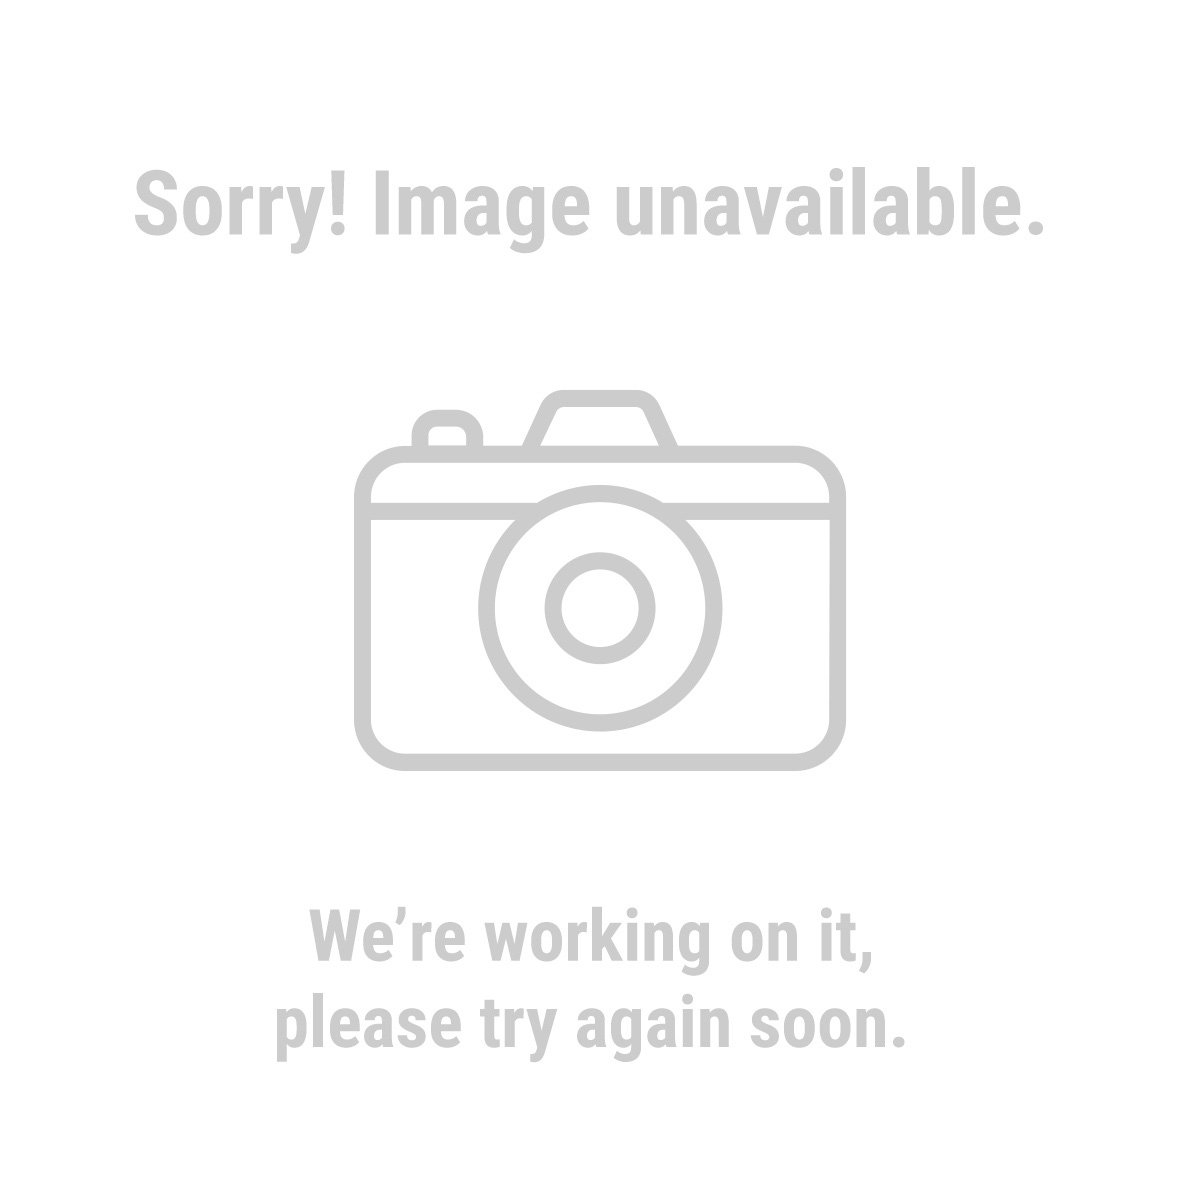 Pittsburgh 9577 7 Piece Double Grip Screwdriver Set